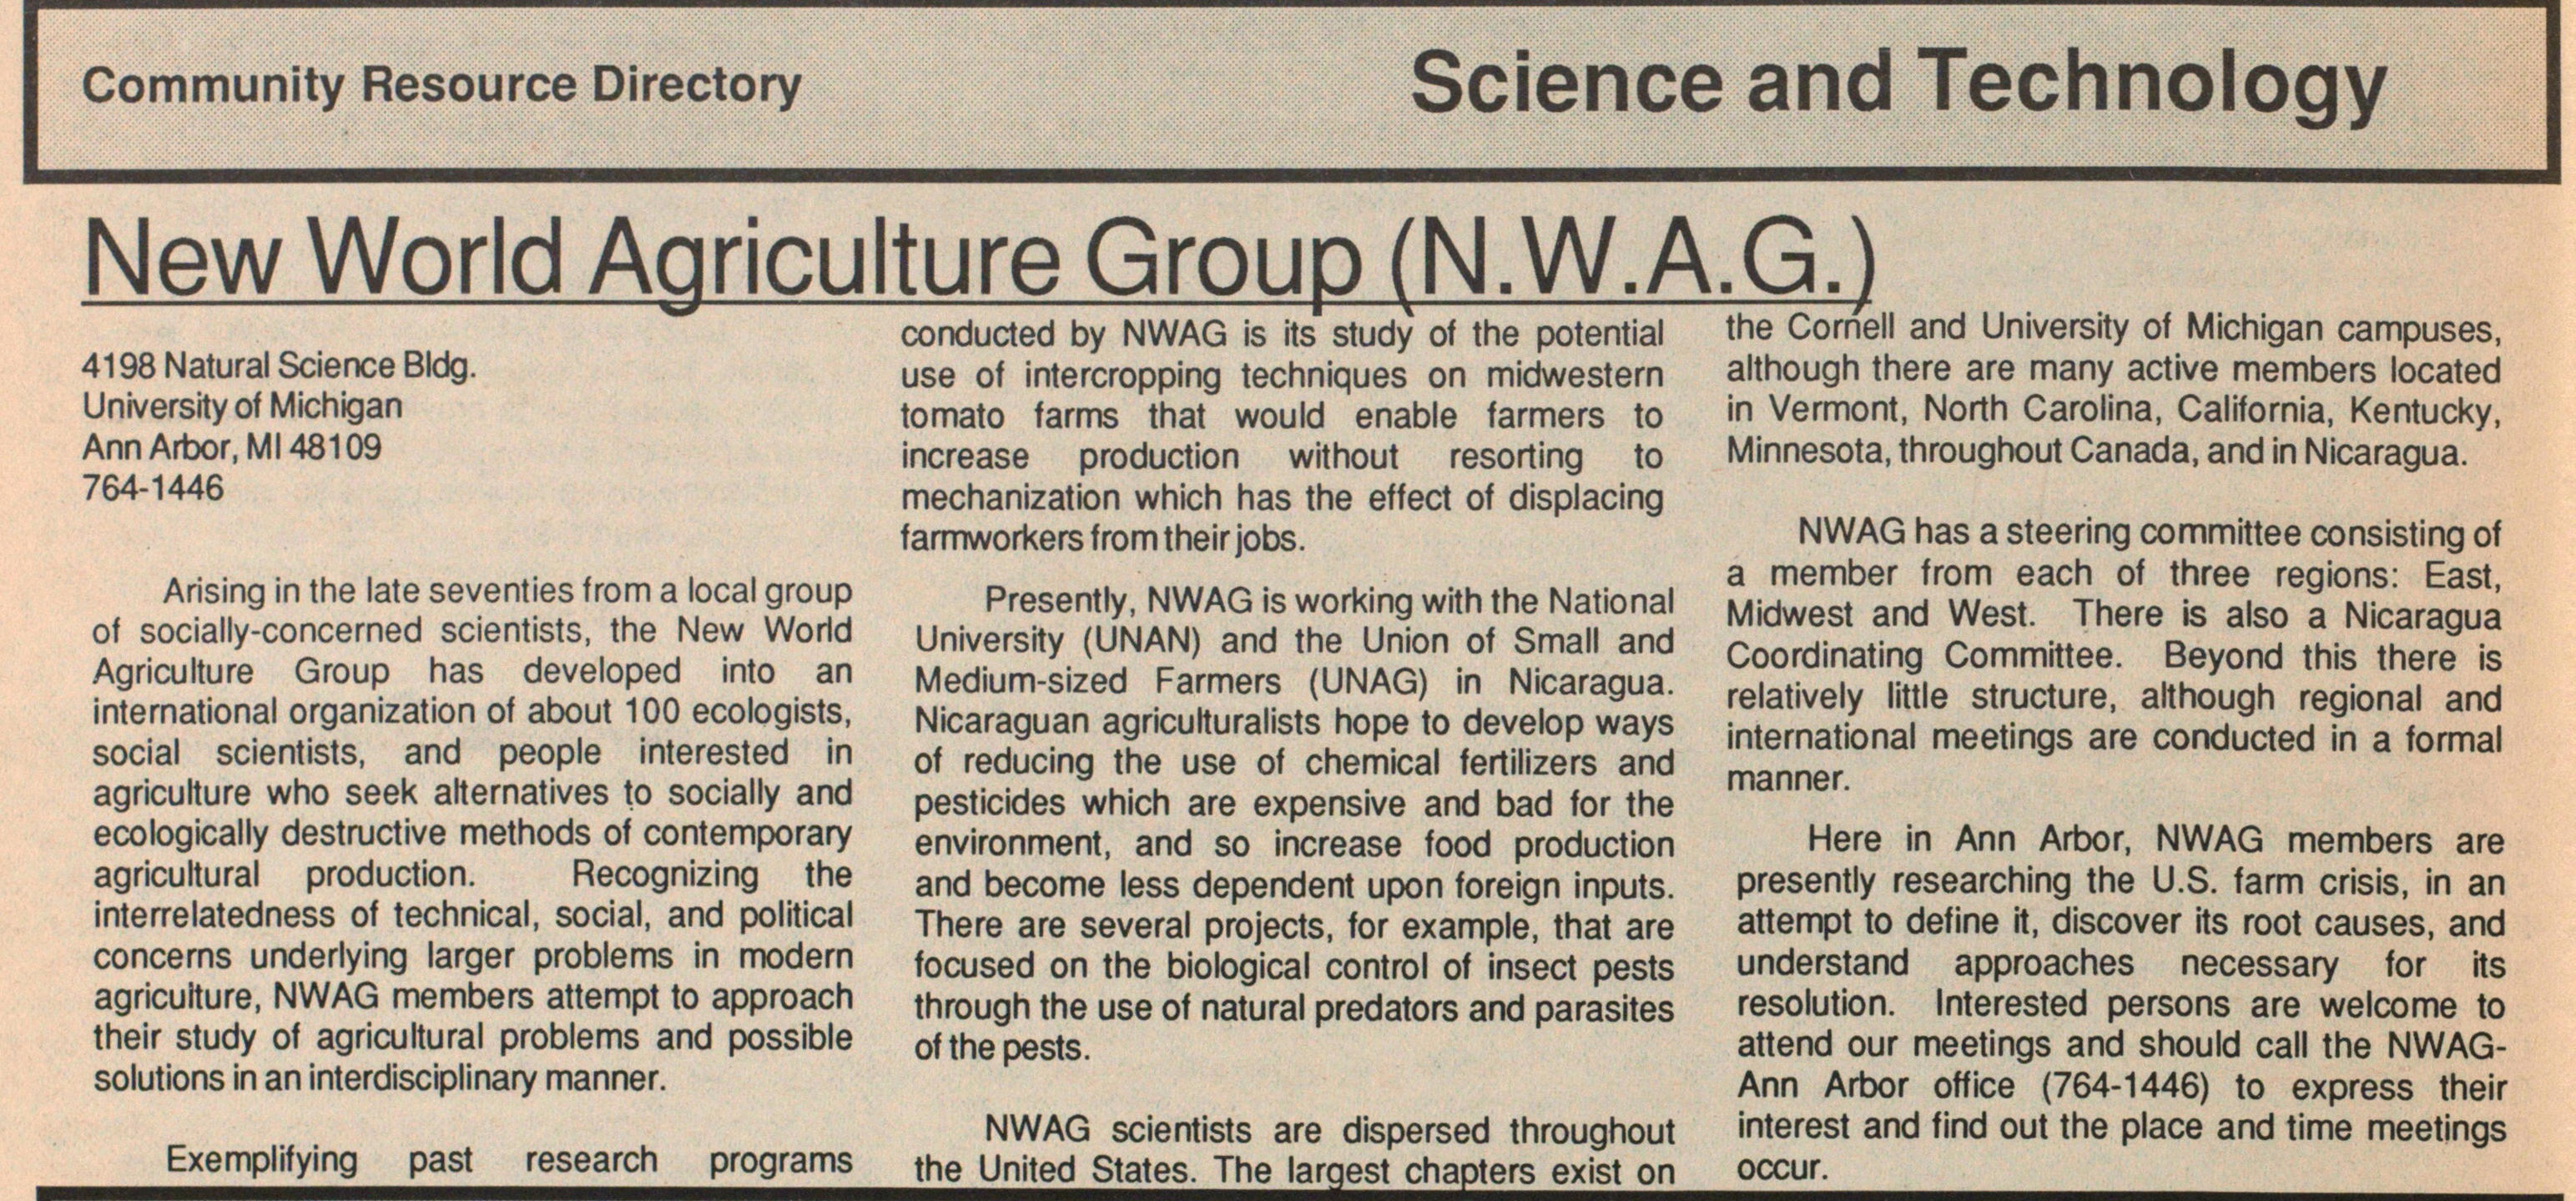 New World Agriculture Group (N.W.A.G.) image